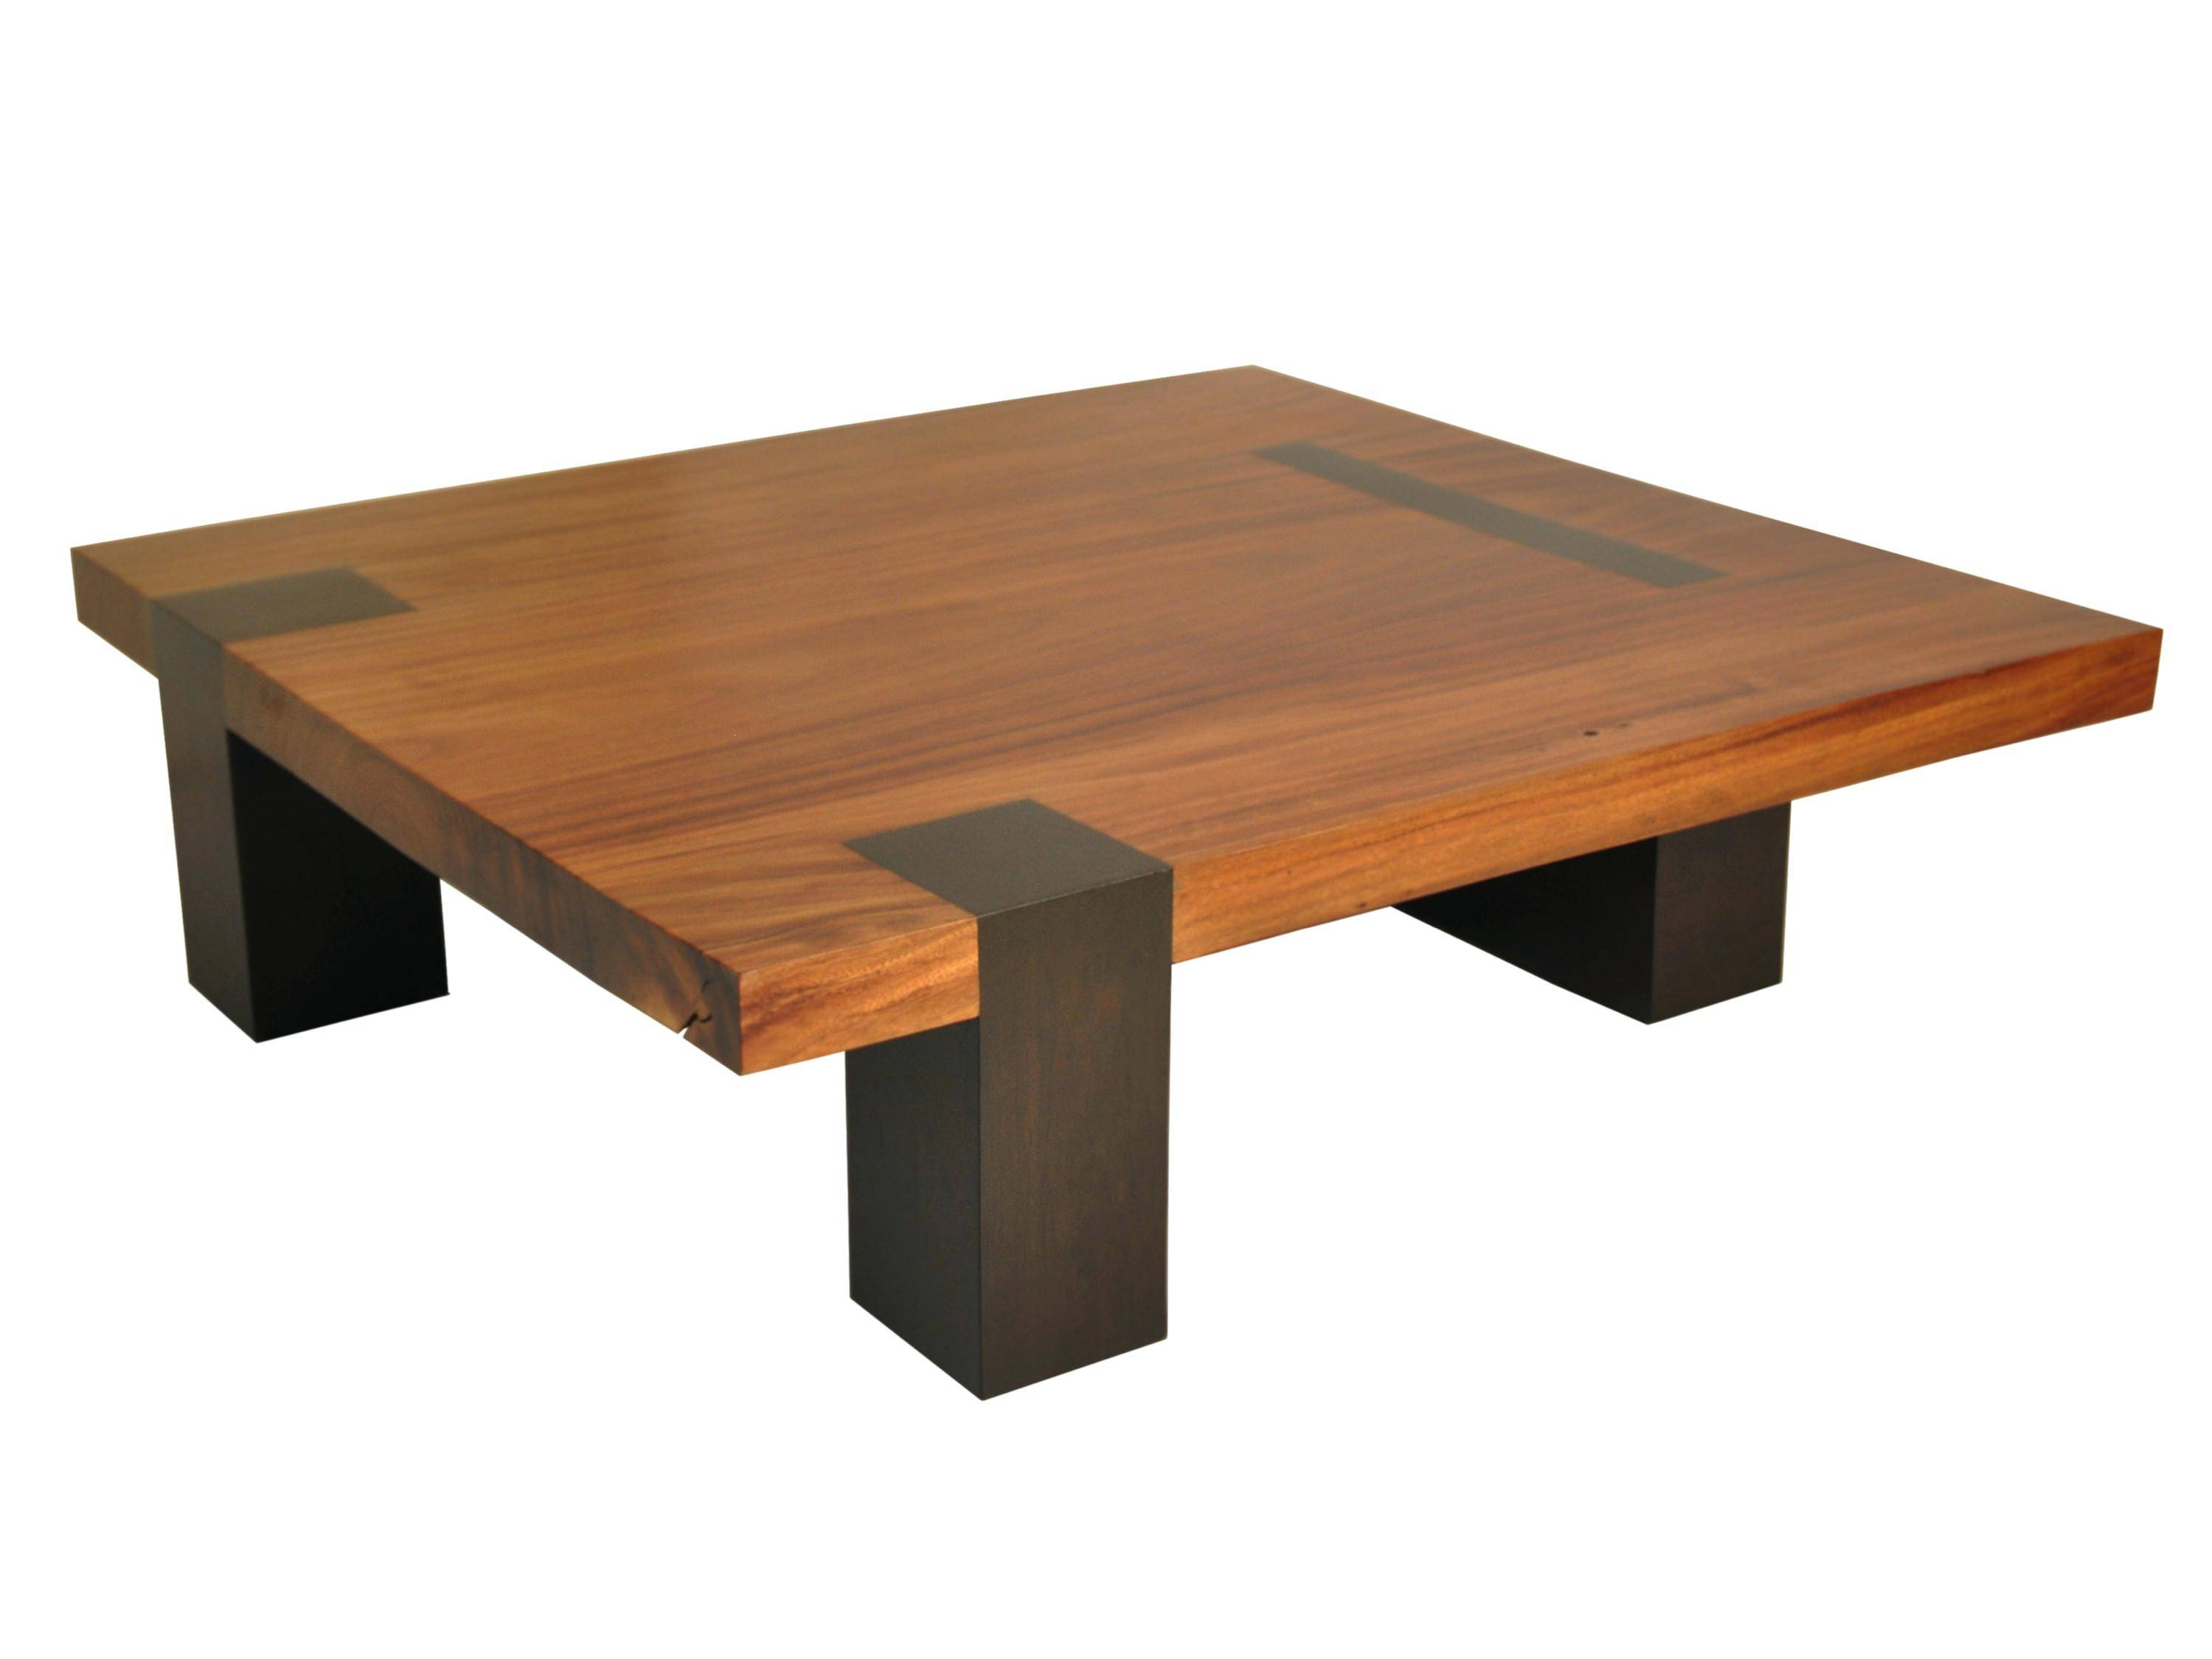 Coffee Table ~ Coffee Table Black Square Modern Wood Low Profile In Large Square Low Coffee Tables (View 13 of 30)